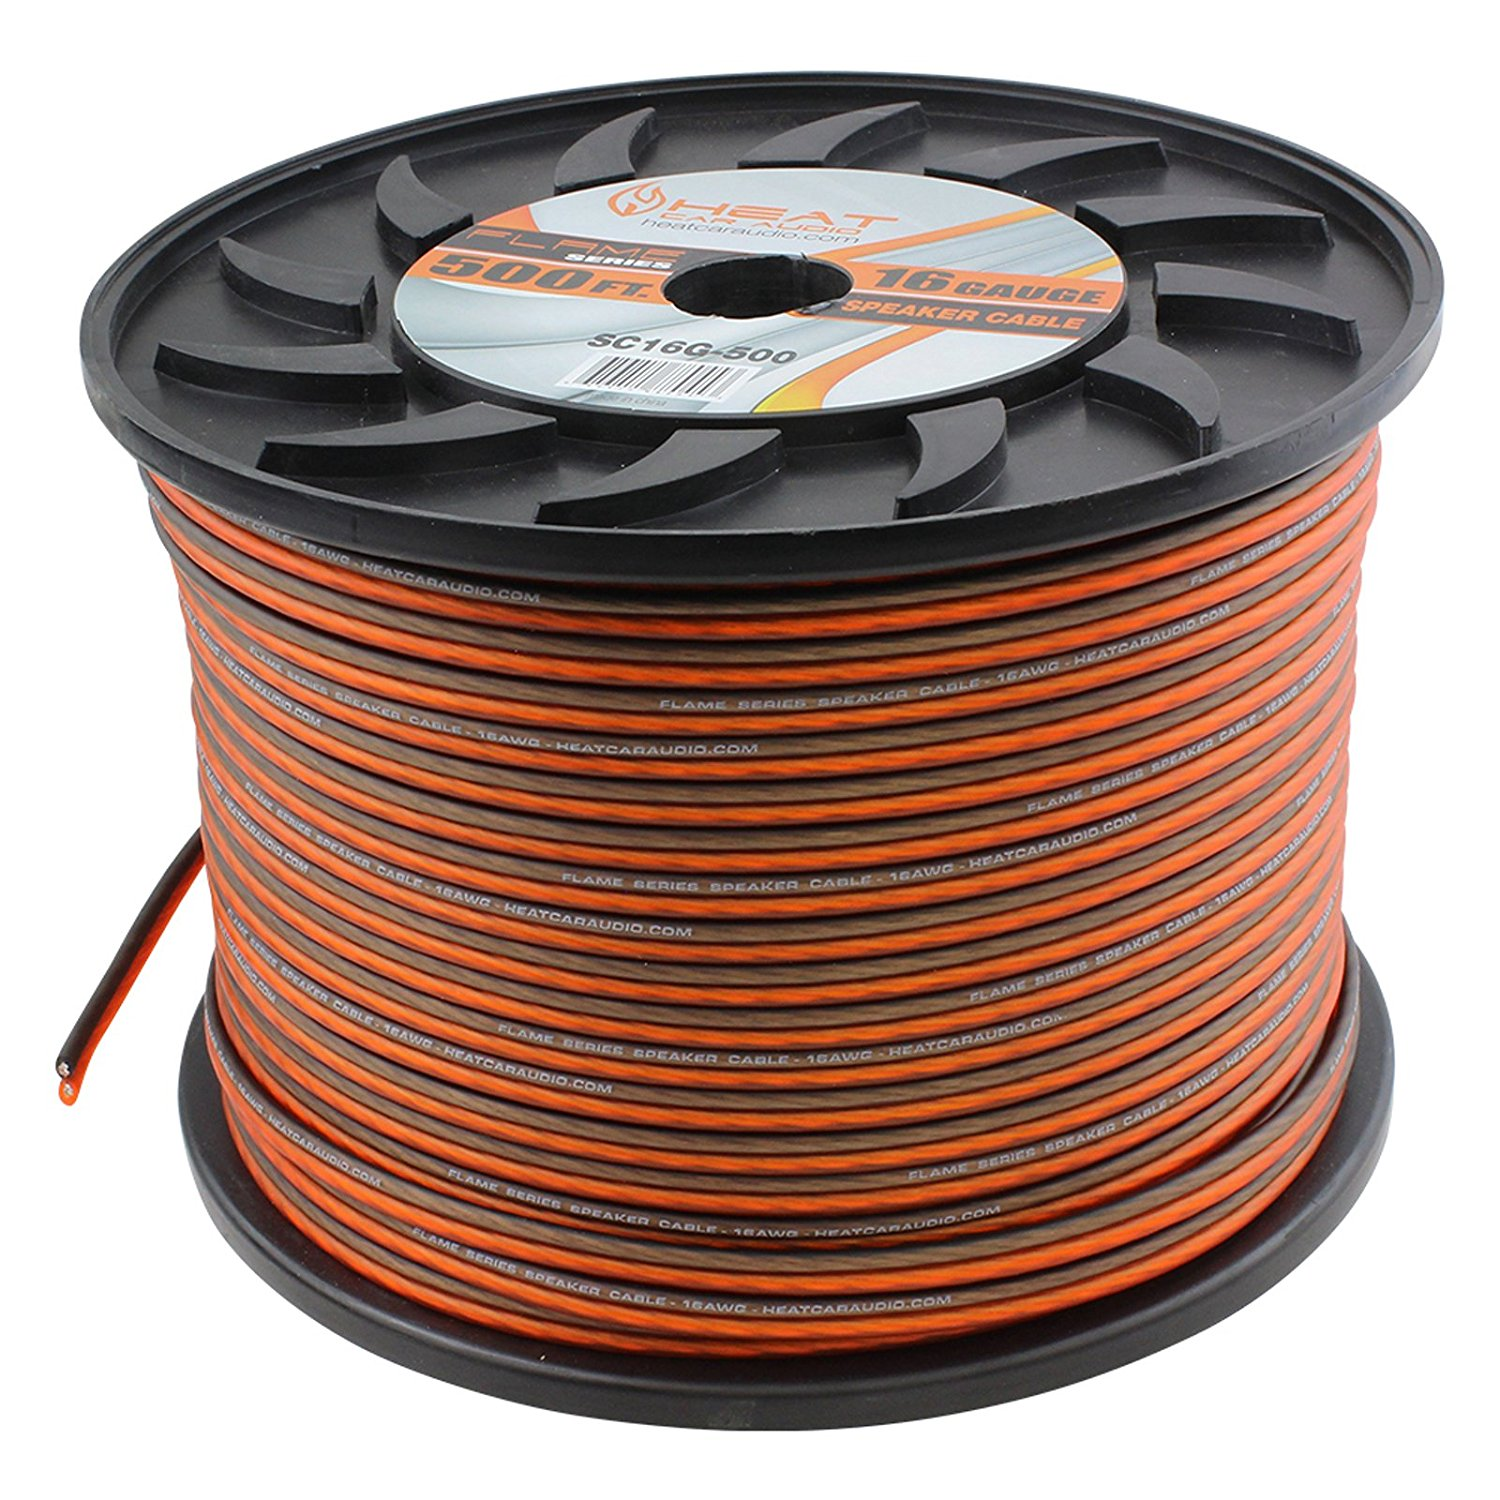 Best gauge speaker wire for home audio wire center cheap best car audio speaker wire find best car audio speaker wire rh guide alibaba com speaker wire gauge requirements best stereo speaker wire keyboard keysfo Image collections